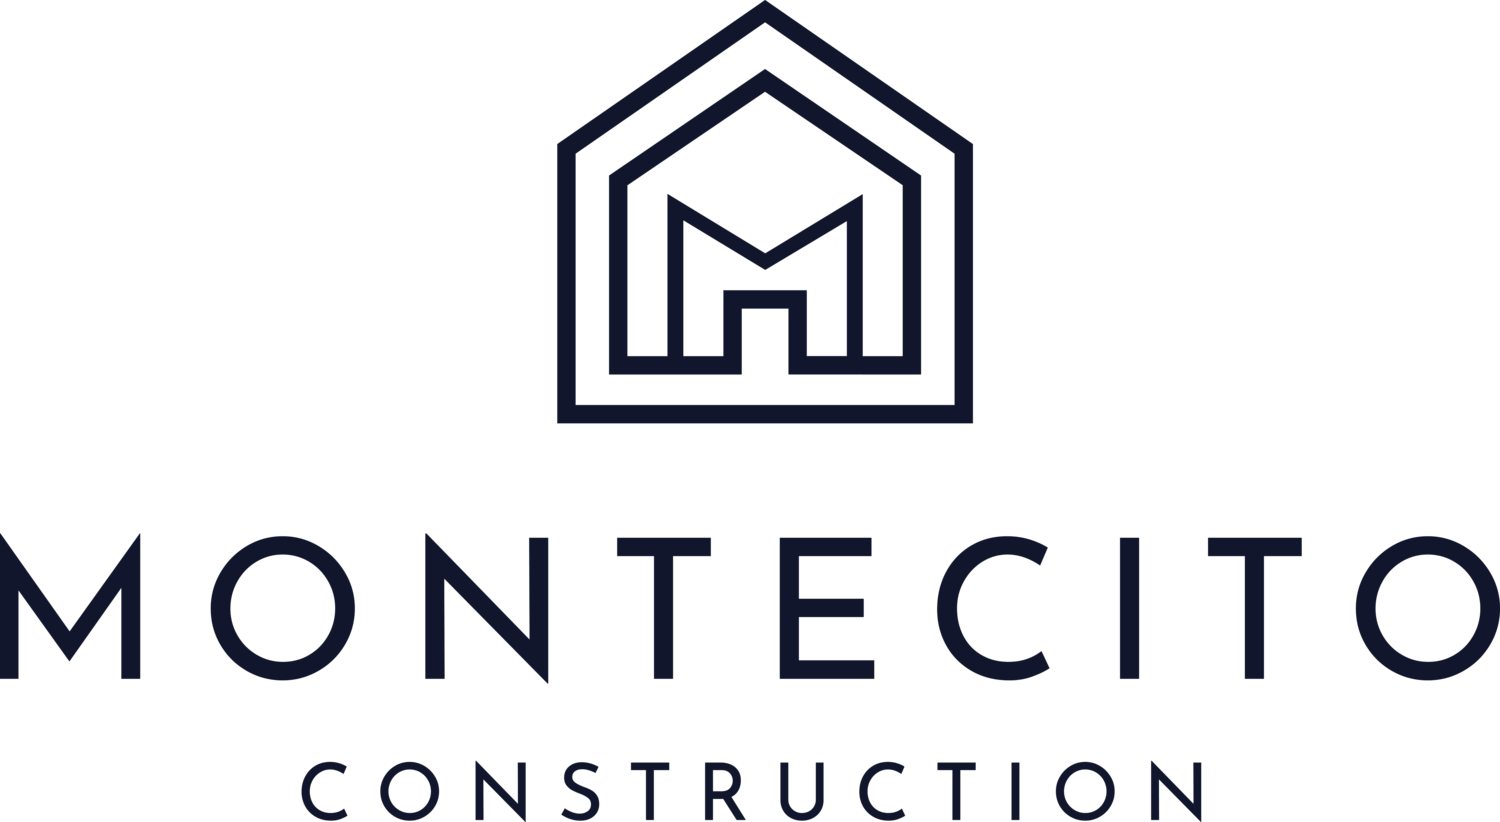 Montecito Construction Inc